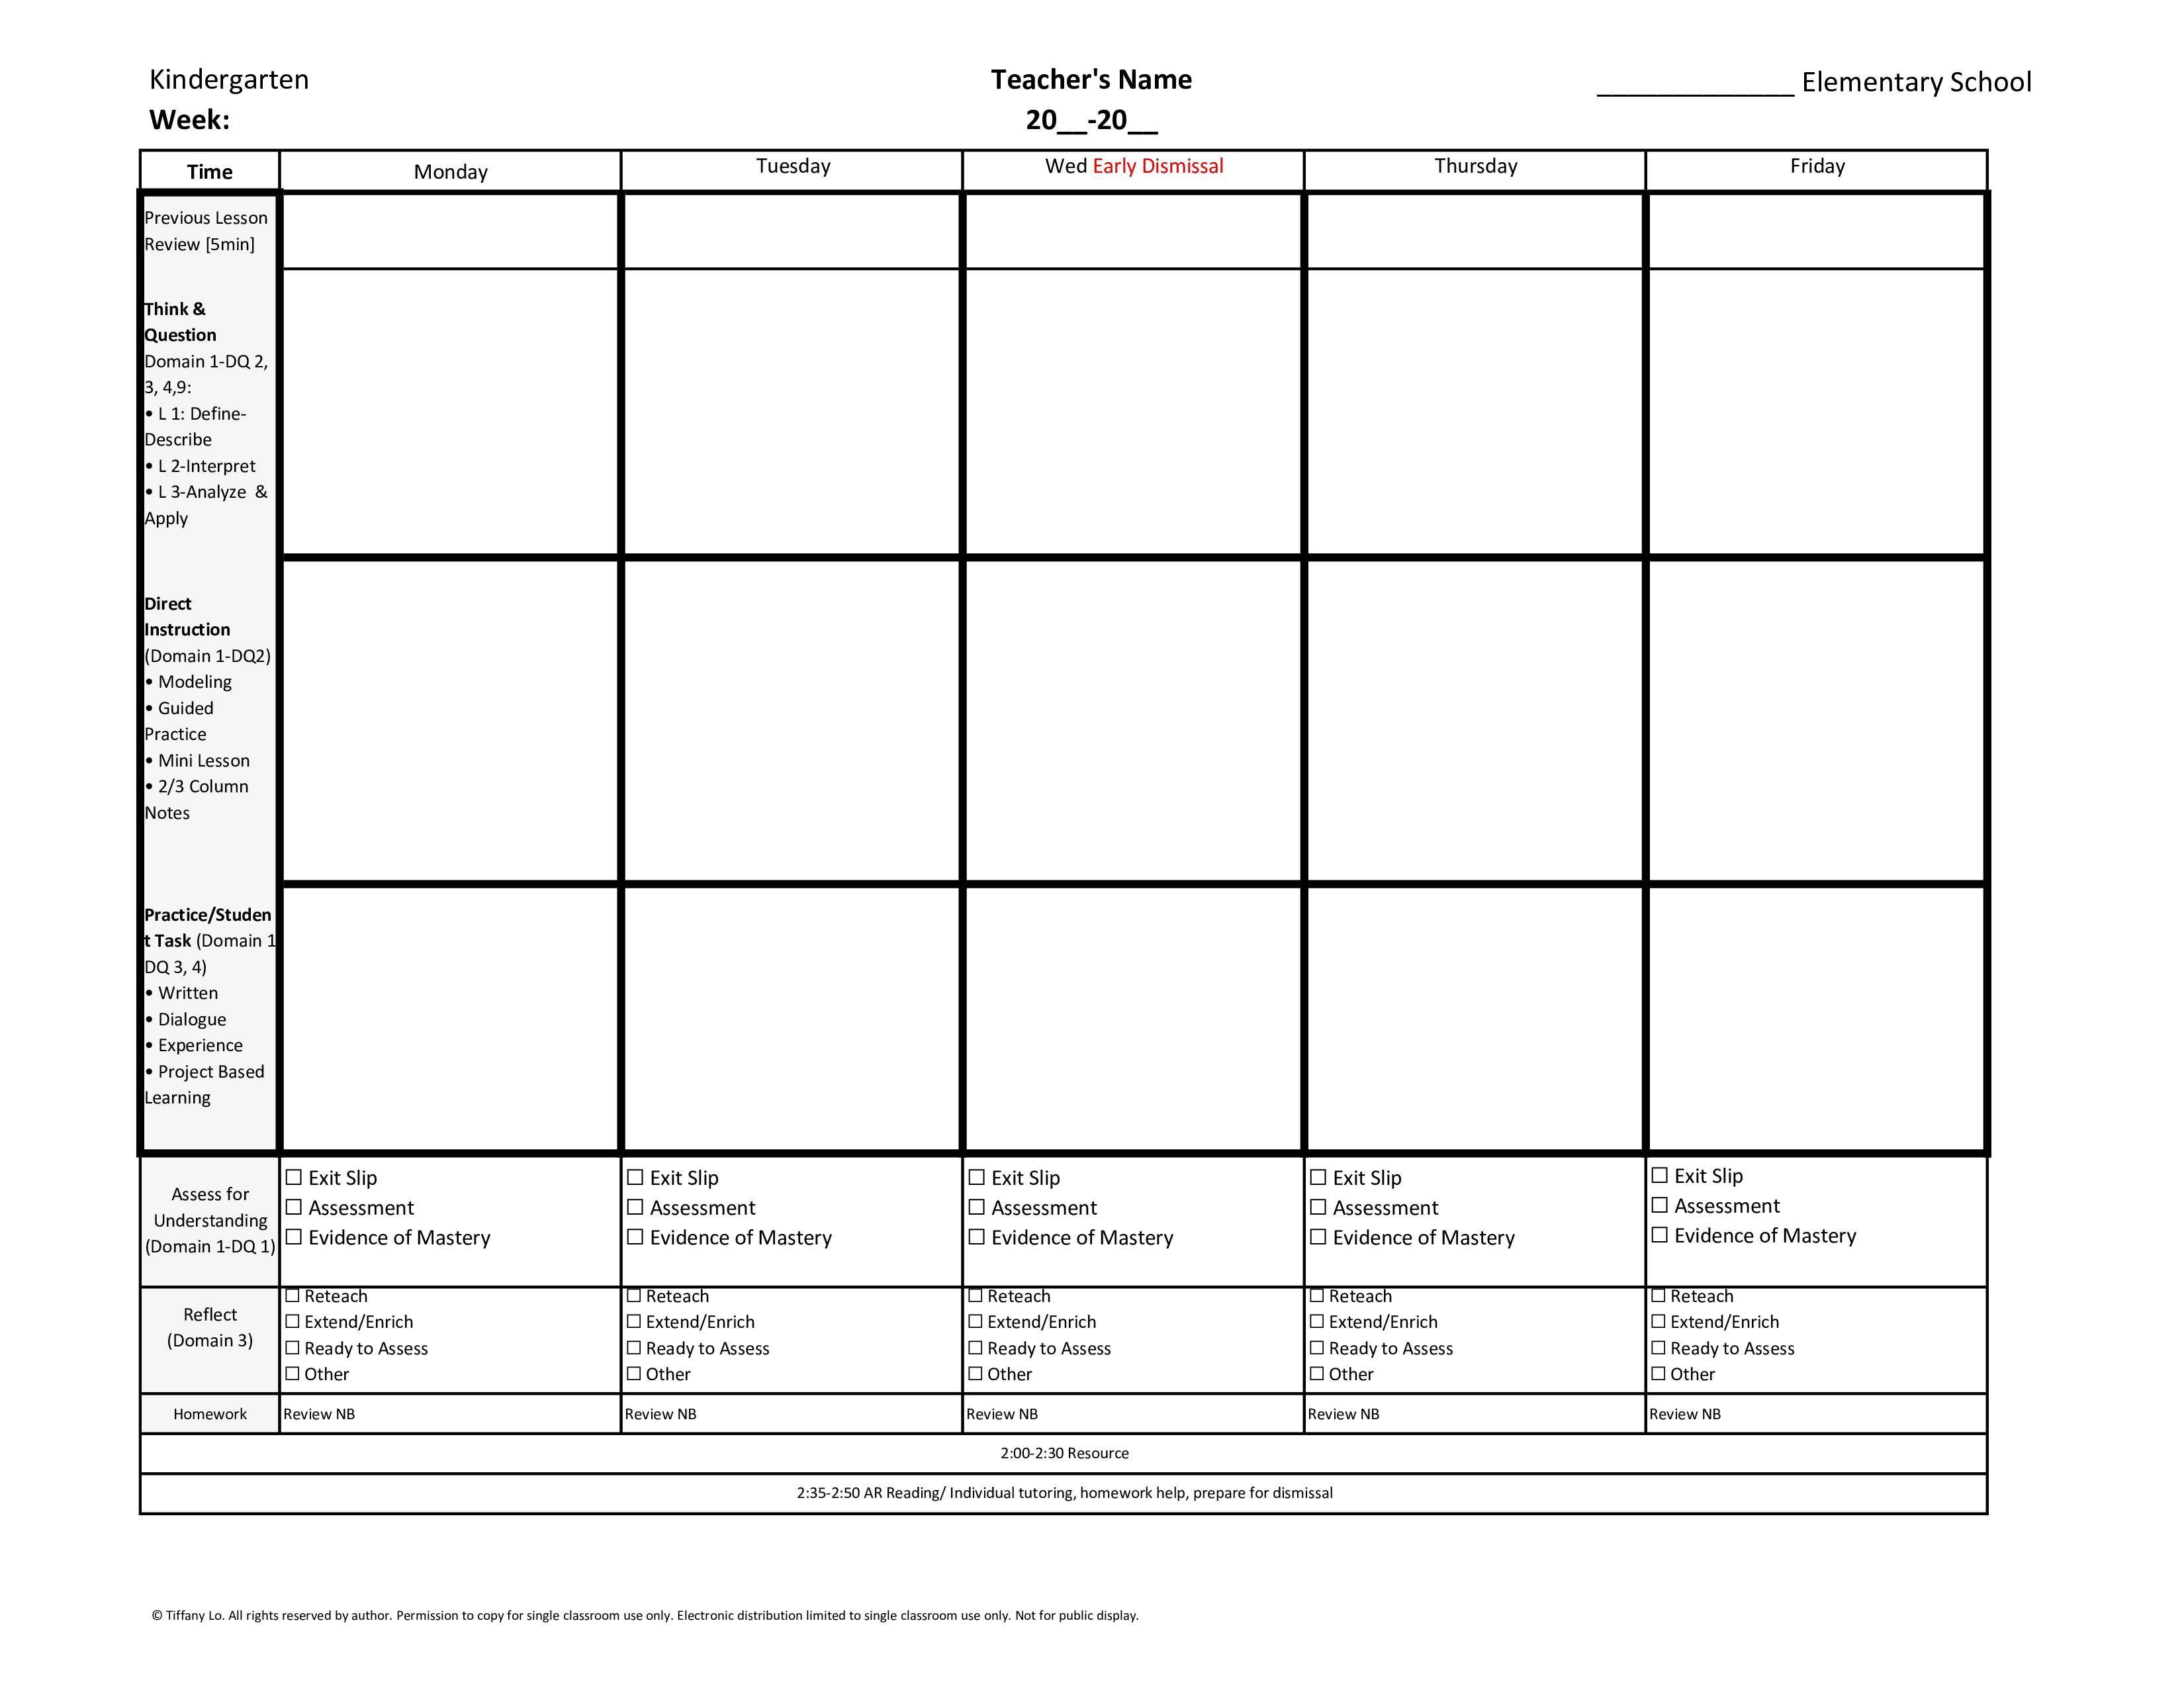 Kindergarten Common Core Weekly Lesson Plan Template W